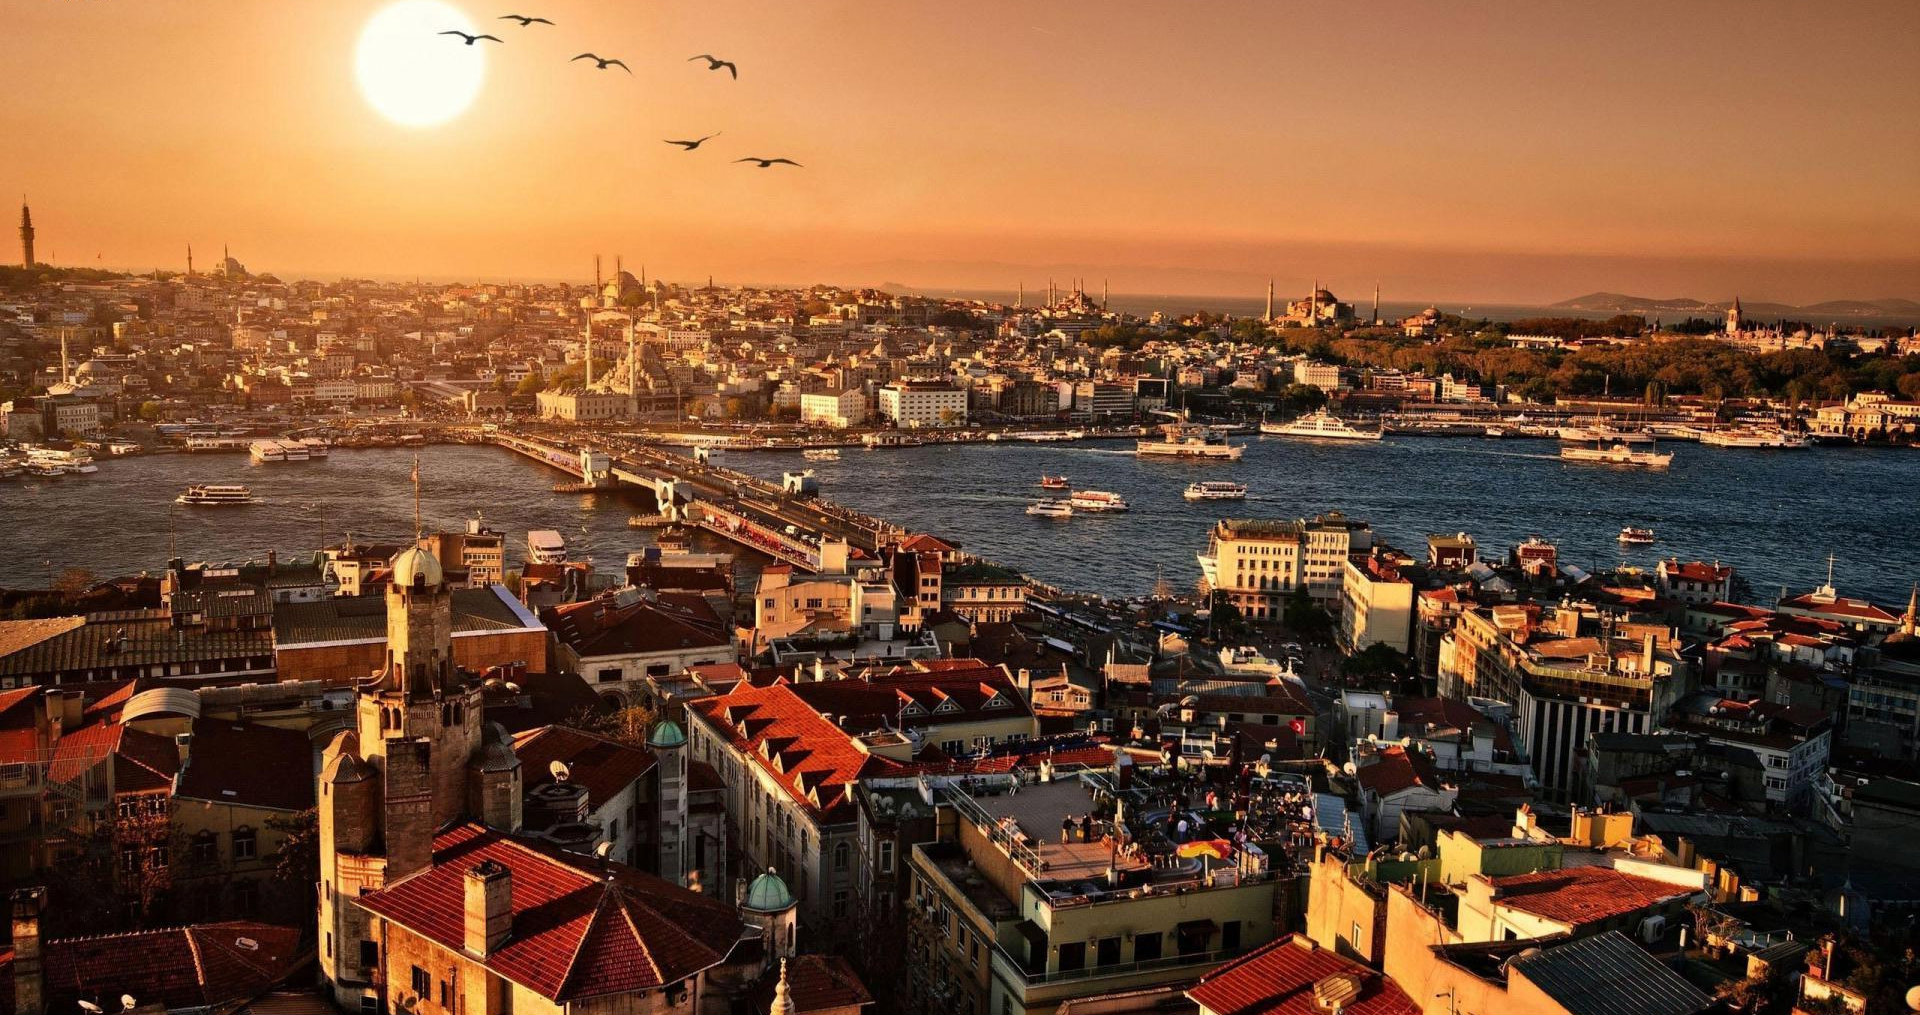 istanbul-sunset-free-desktop-city-wallpaper-edit